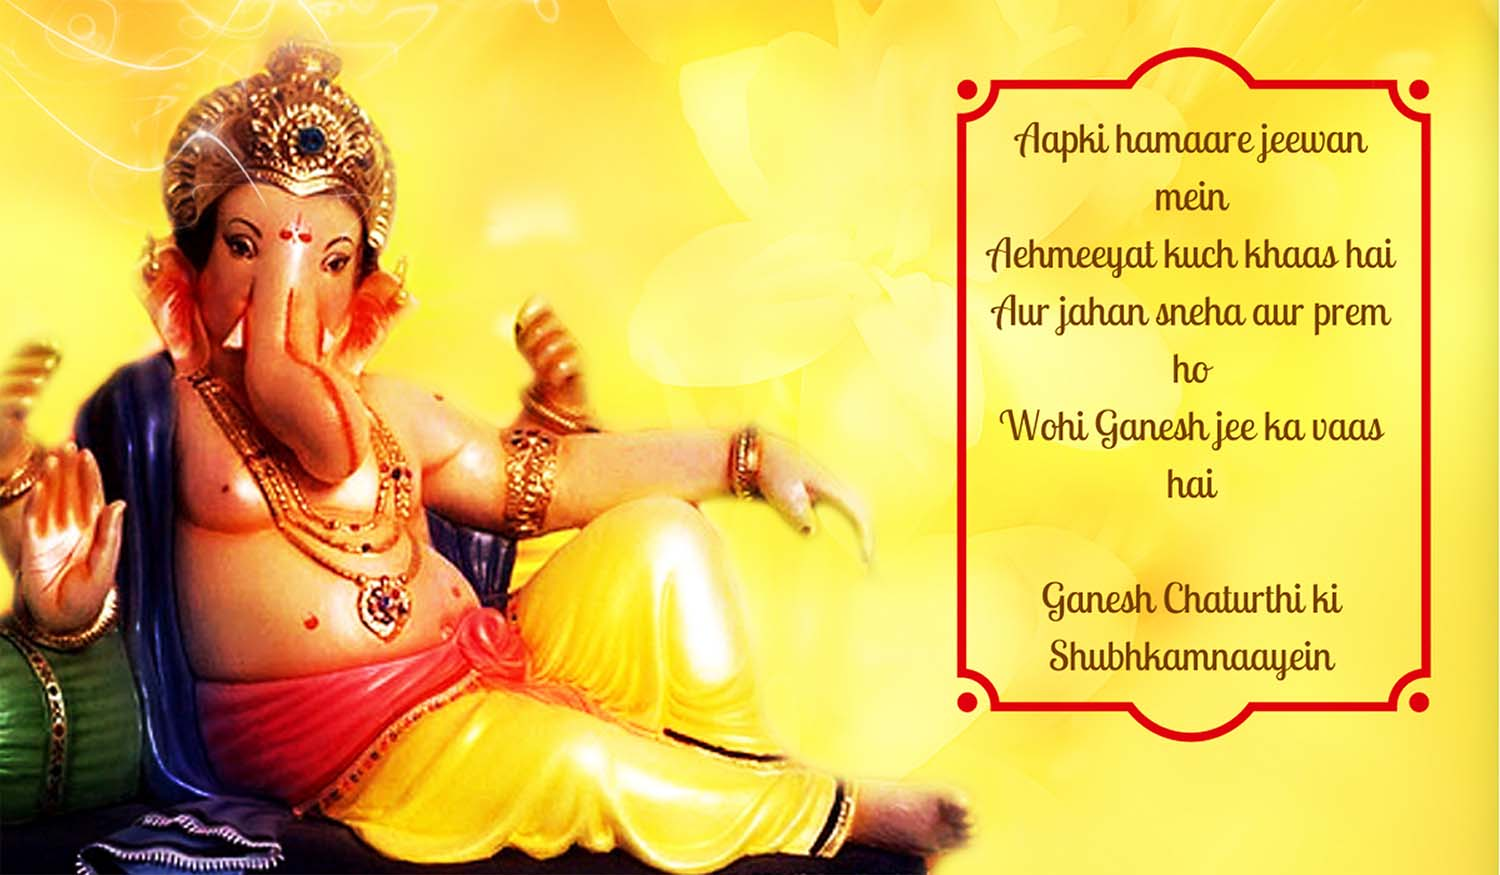 lord Ganesha quotes